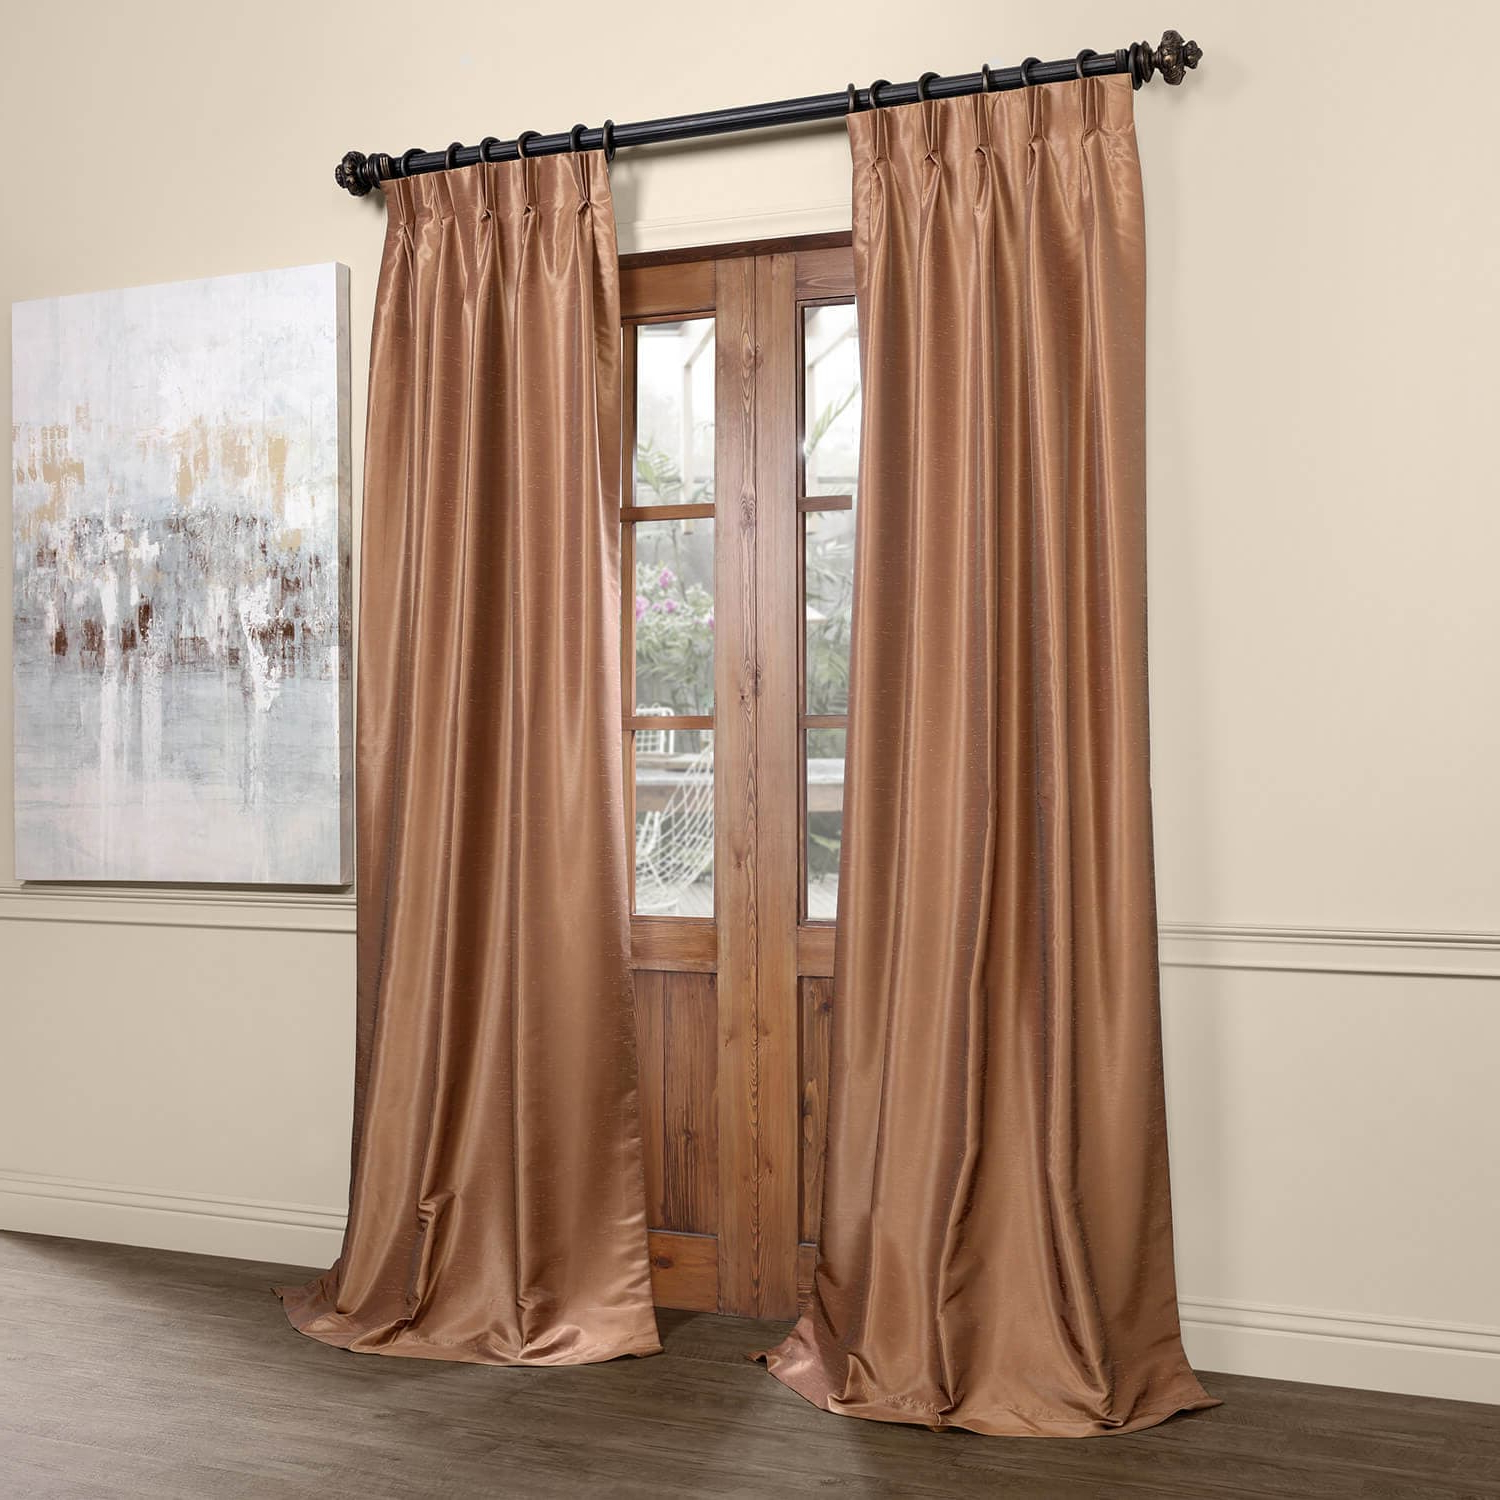 Details About Pleated Vintage Textured Faux Dupioni Silk Bl For 2020 Vintage Textured Faux Dupioni Silk Curtain Panels (View 9 of 20)